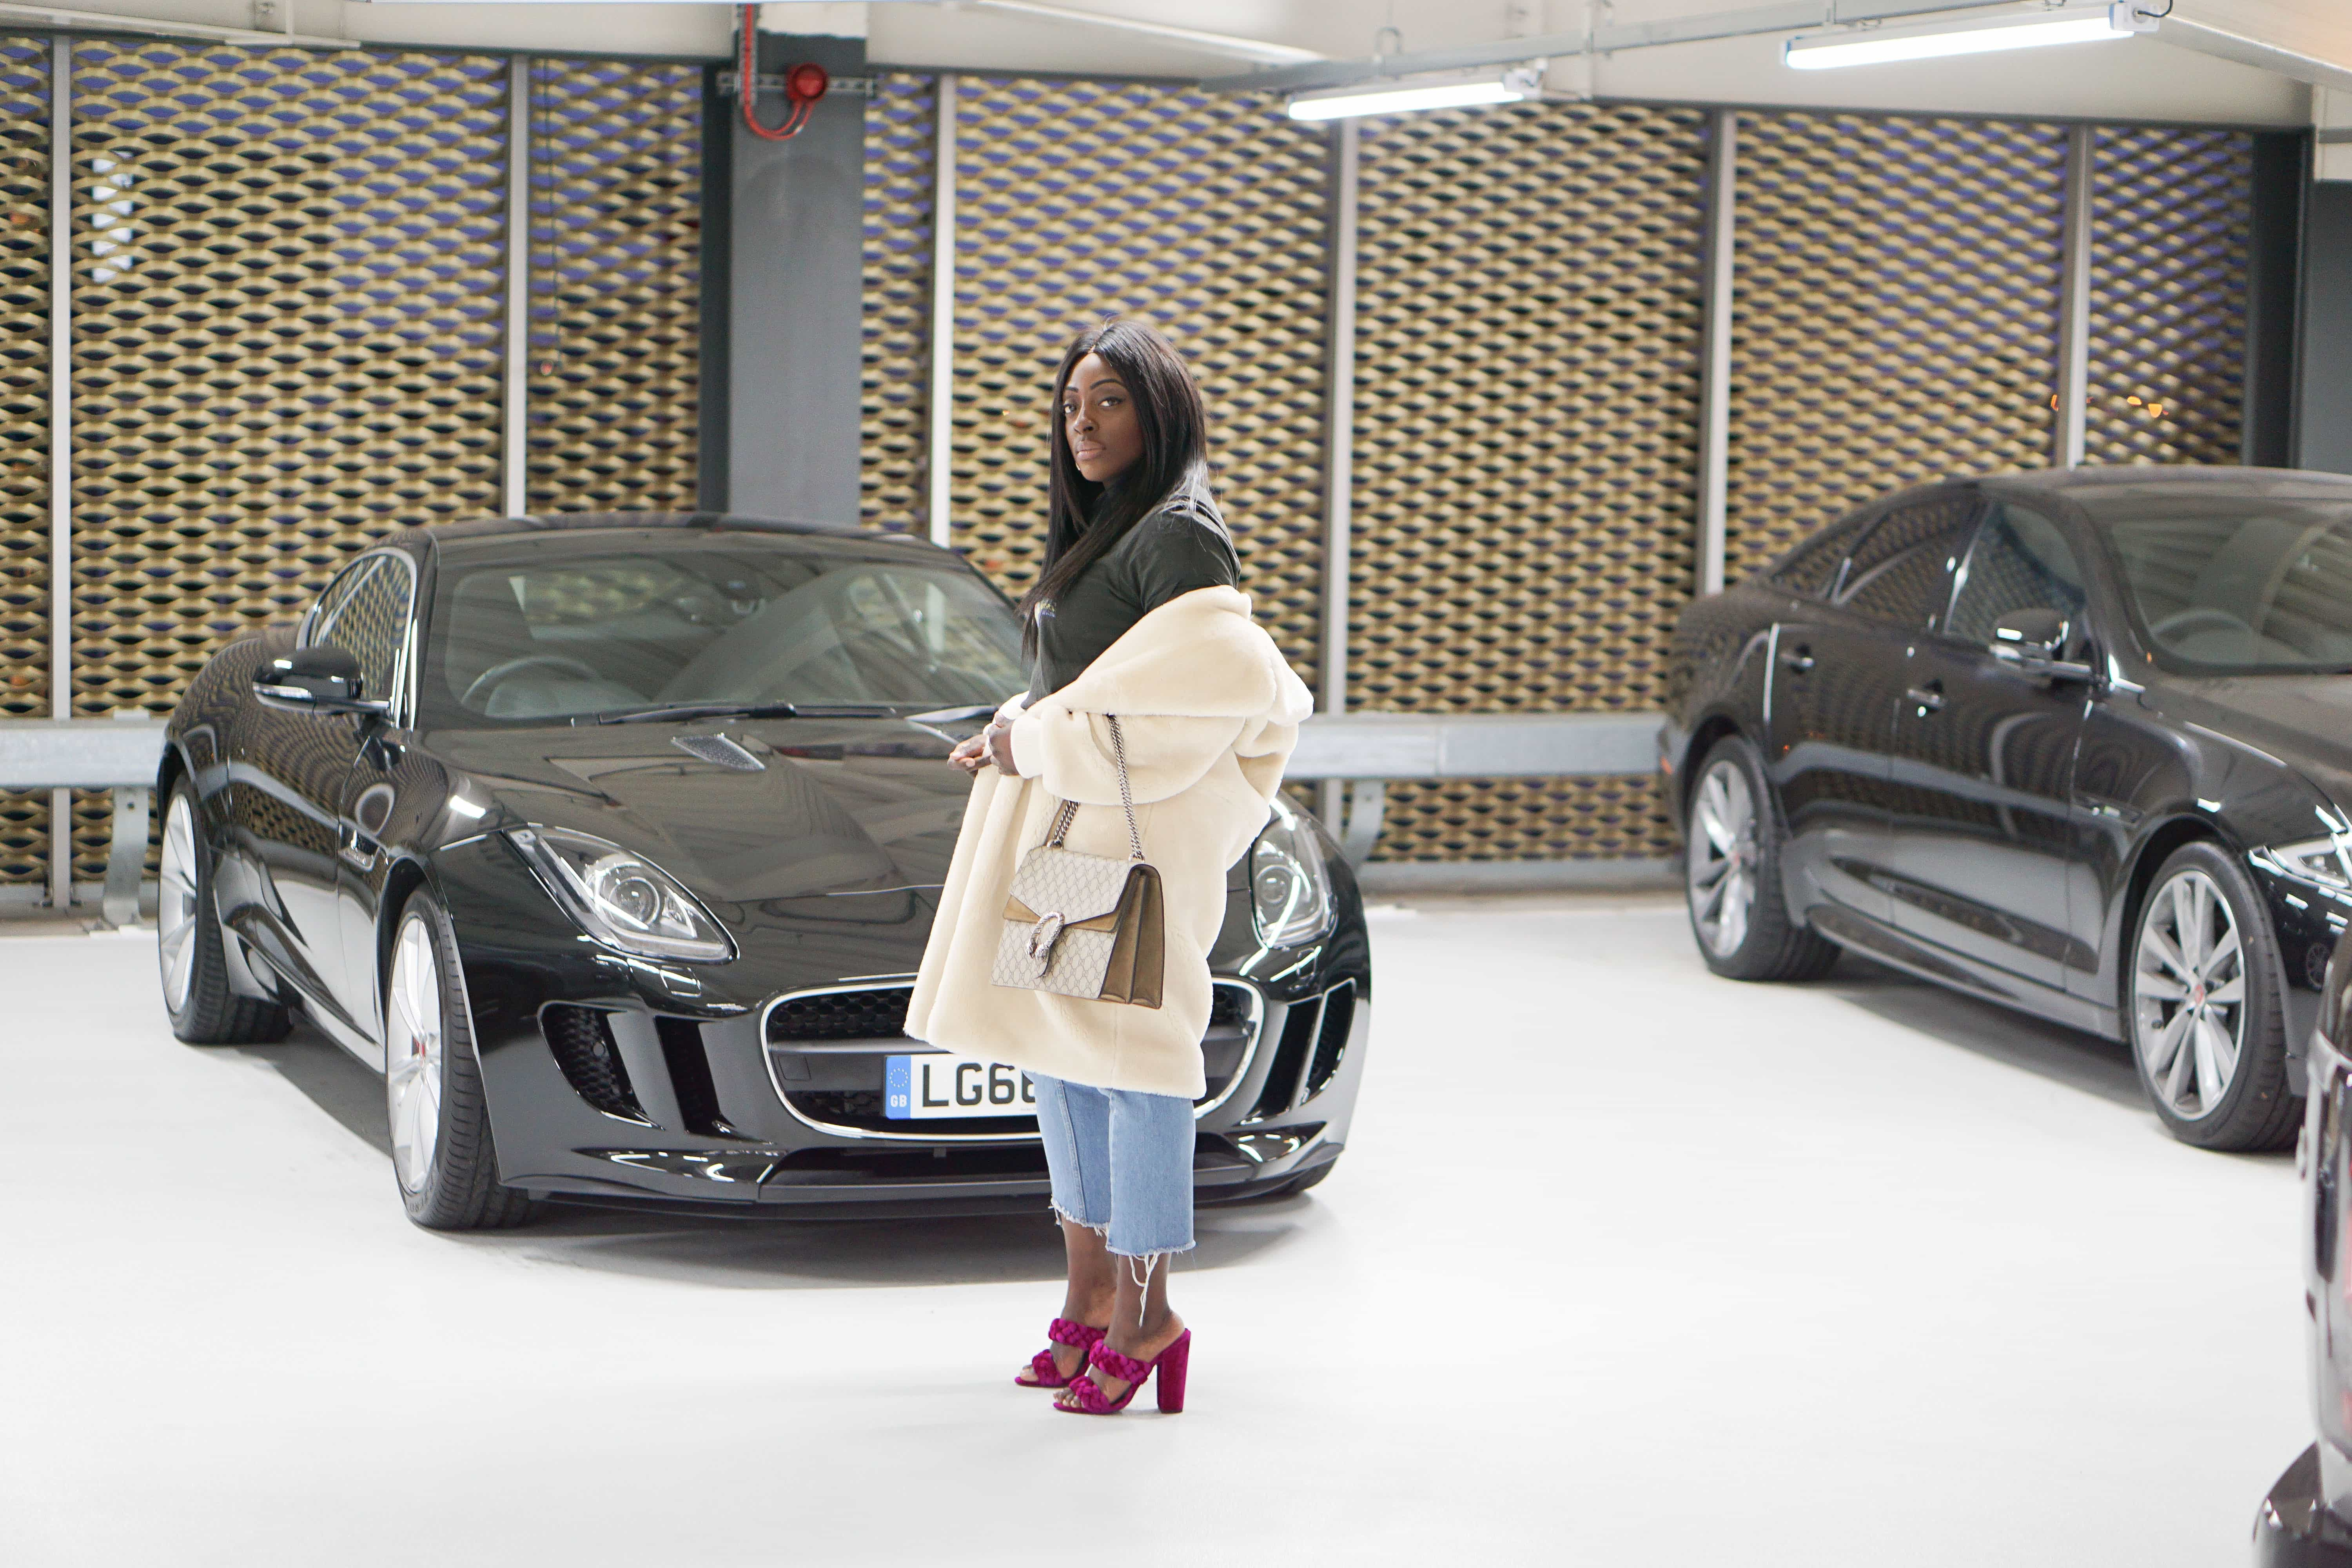 Fur Coats and Winter Car Park Sass 3 - Style and the Sass